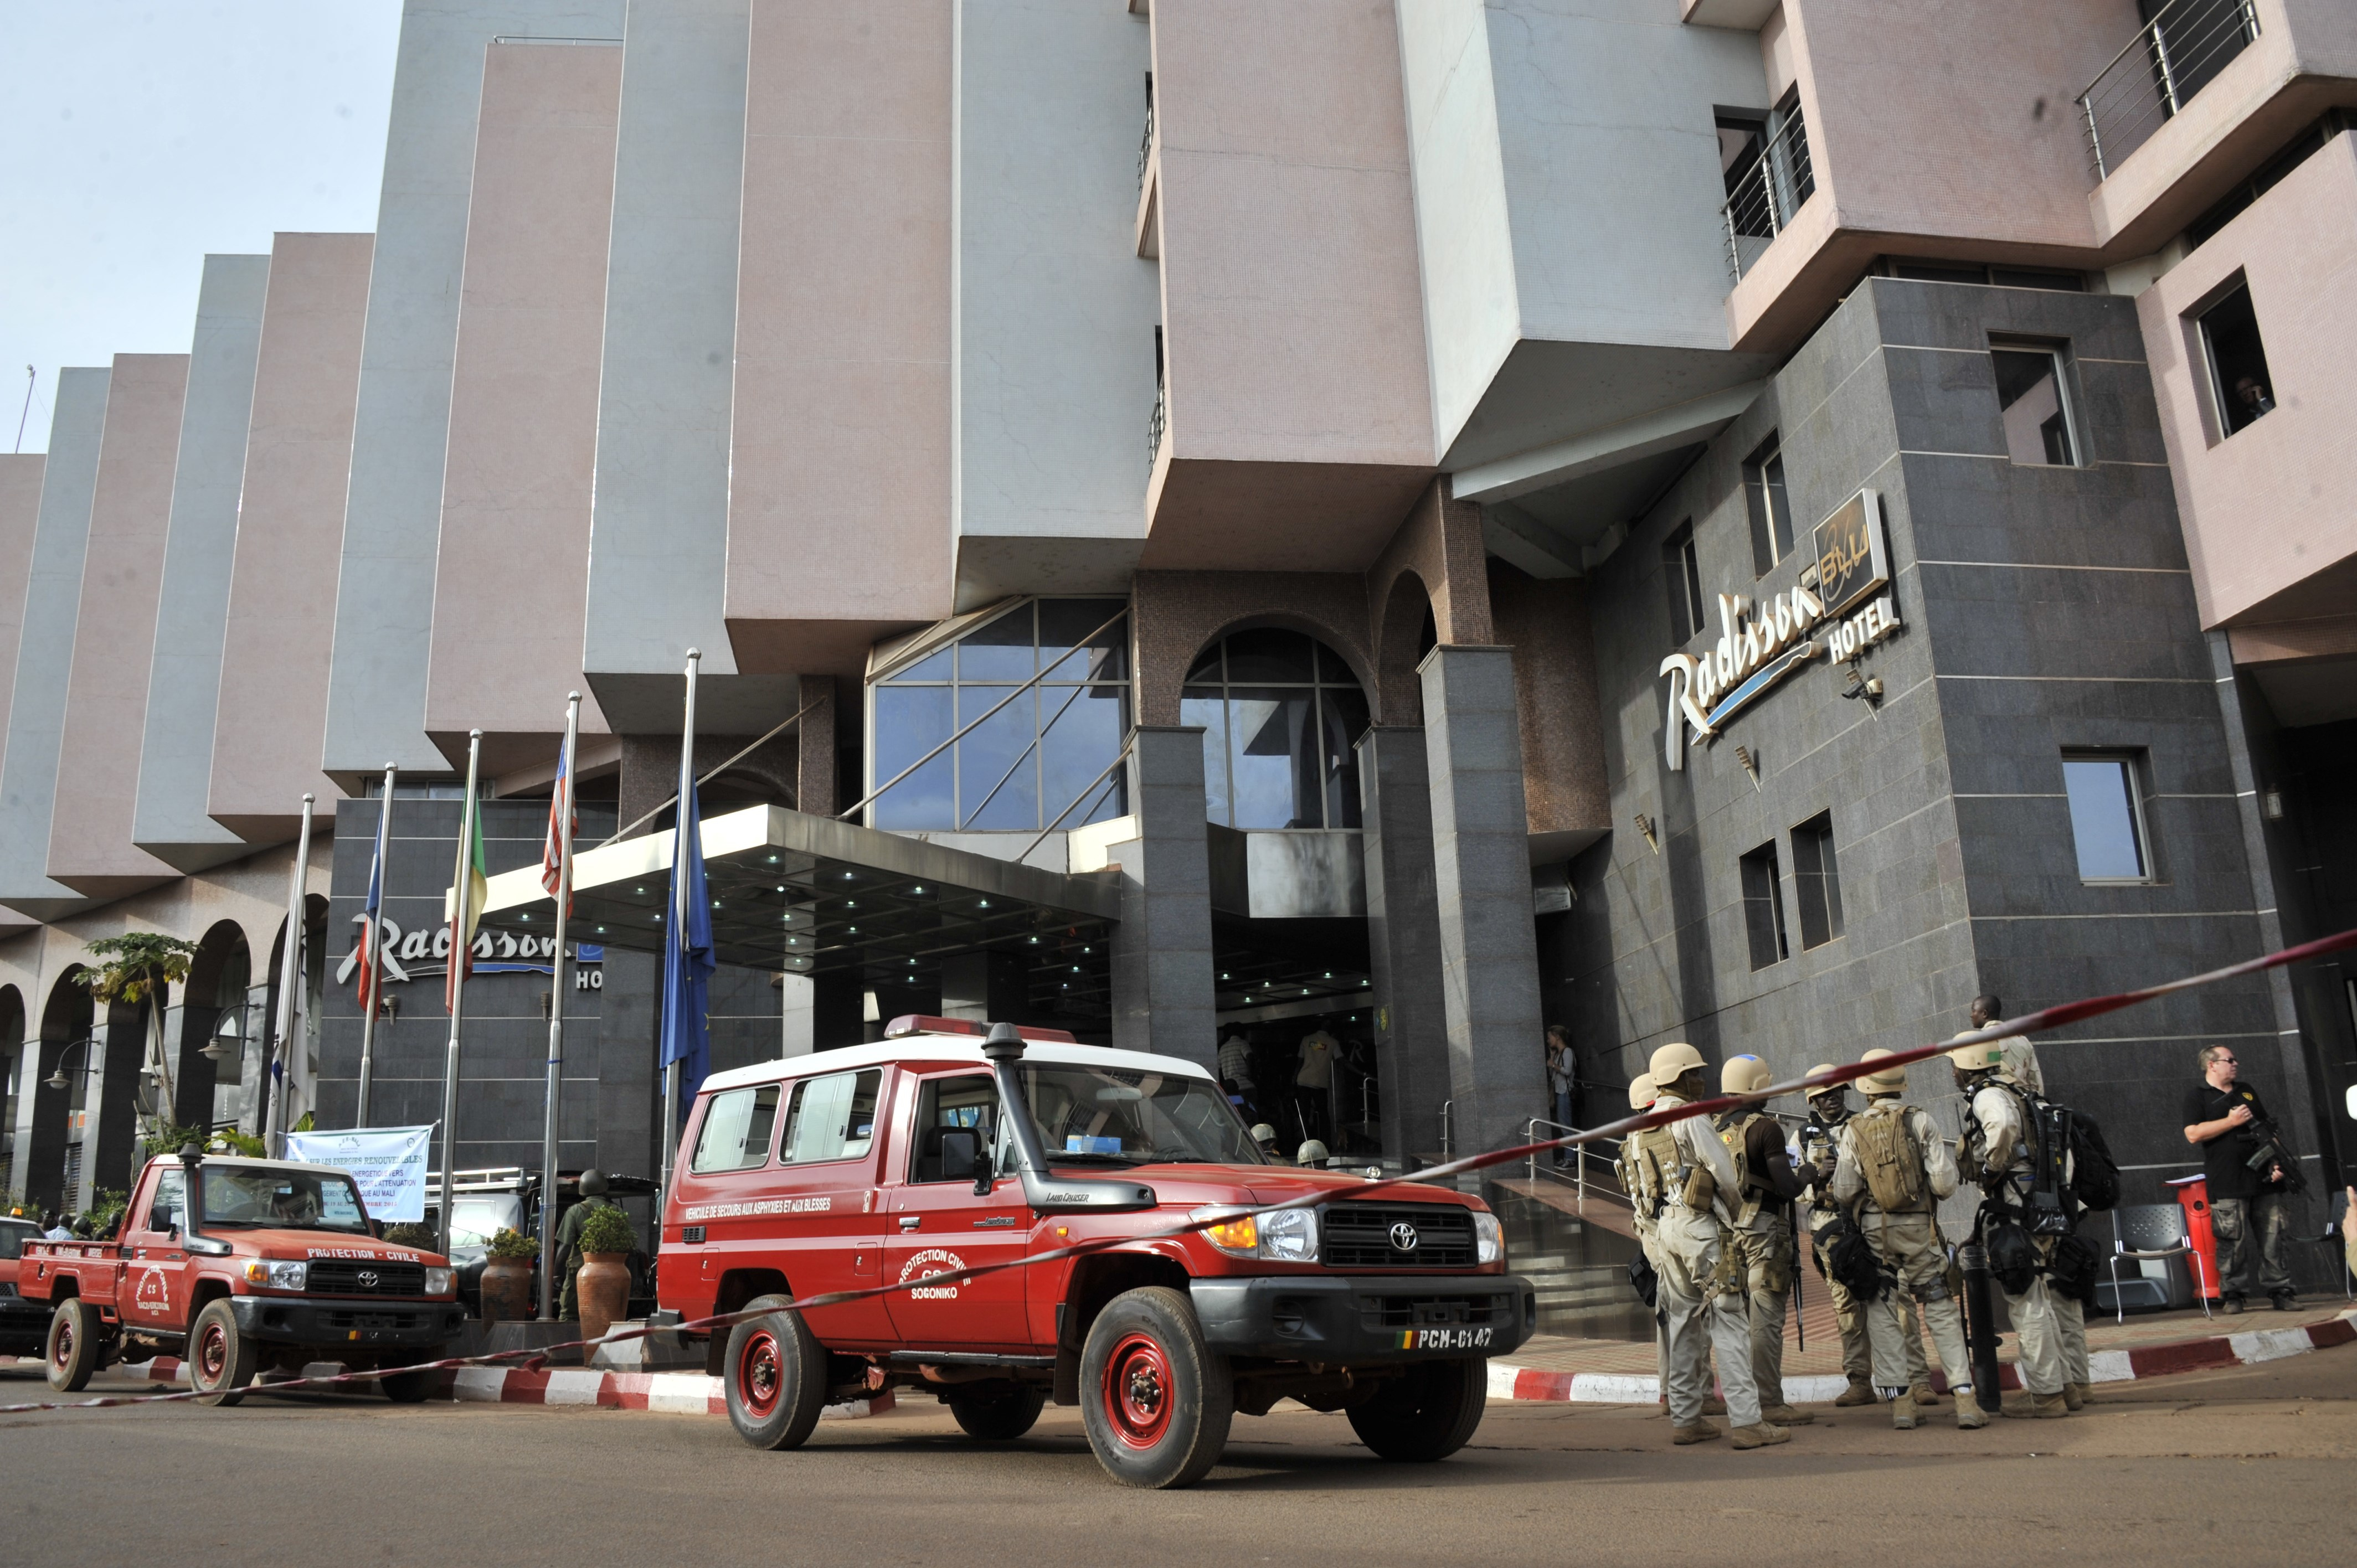 Malian soldiers and special forces stand guard at the entrance the Radisson Blu hotel in Bamako on Nov. 20, 2015, after the assault of security forces. (Habibou Kouyate/AFP/Getty Images)